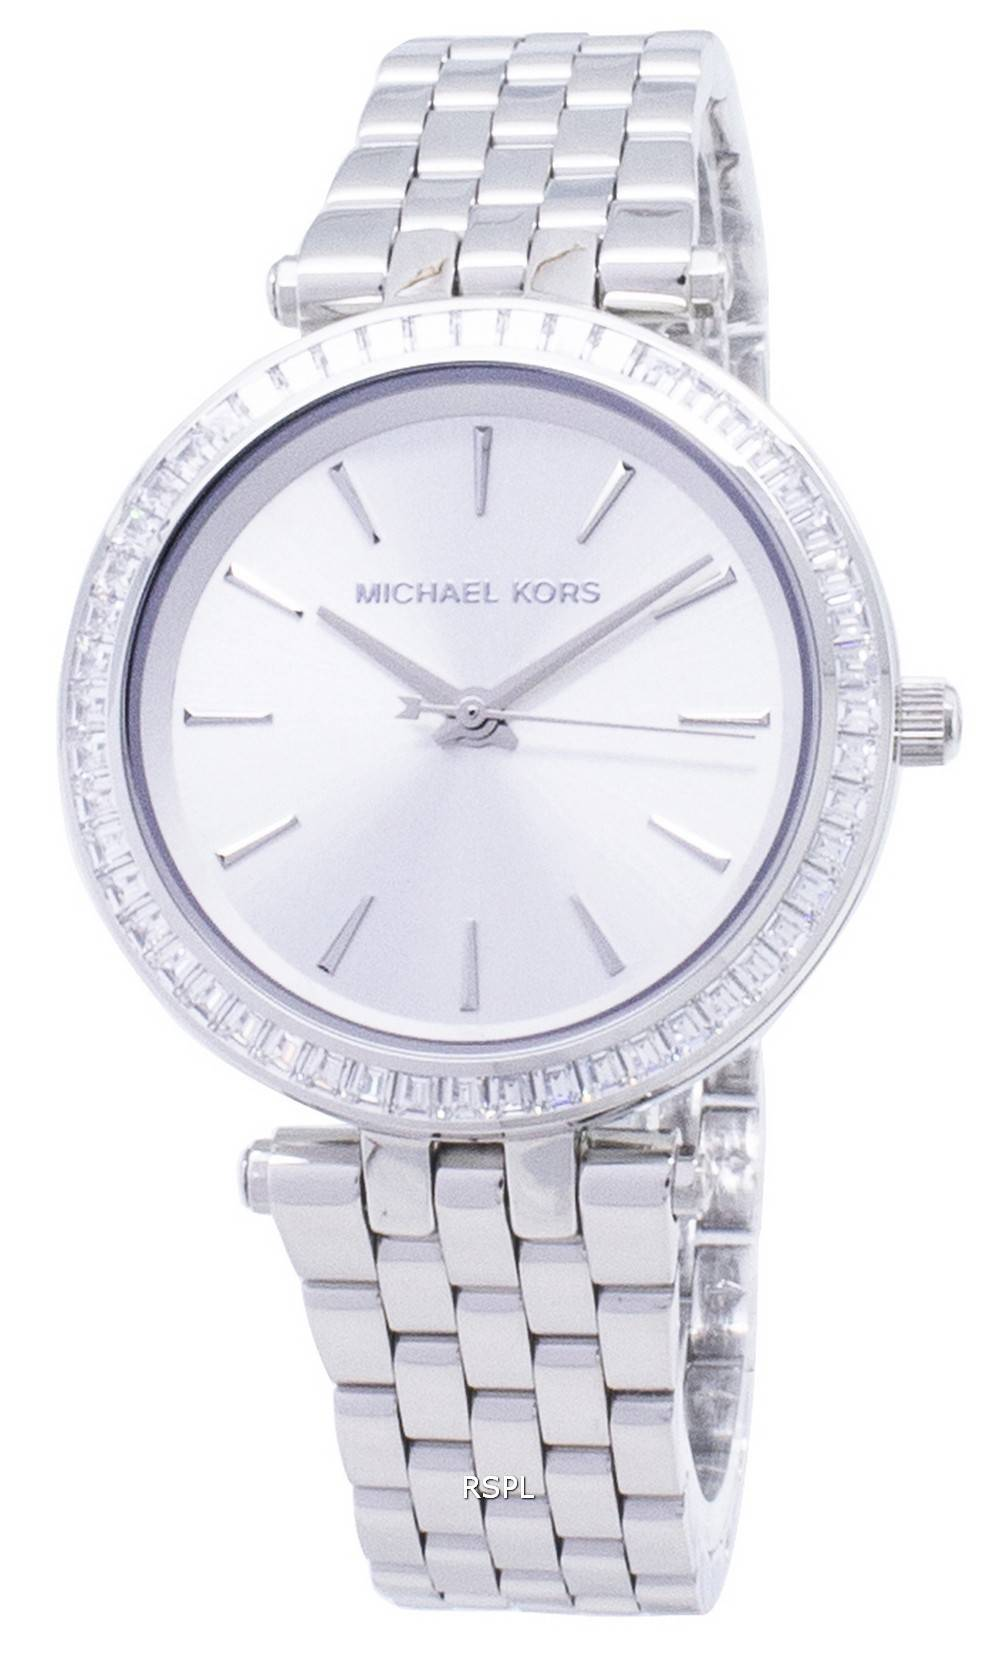 5b4551d5c43c5 Michael Kors Petite Darci Silver Dial Stainless Steel MK3364 Womens Watch  Singapore